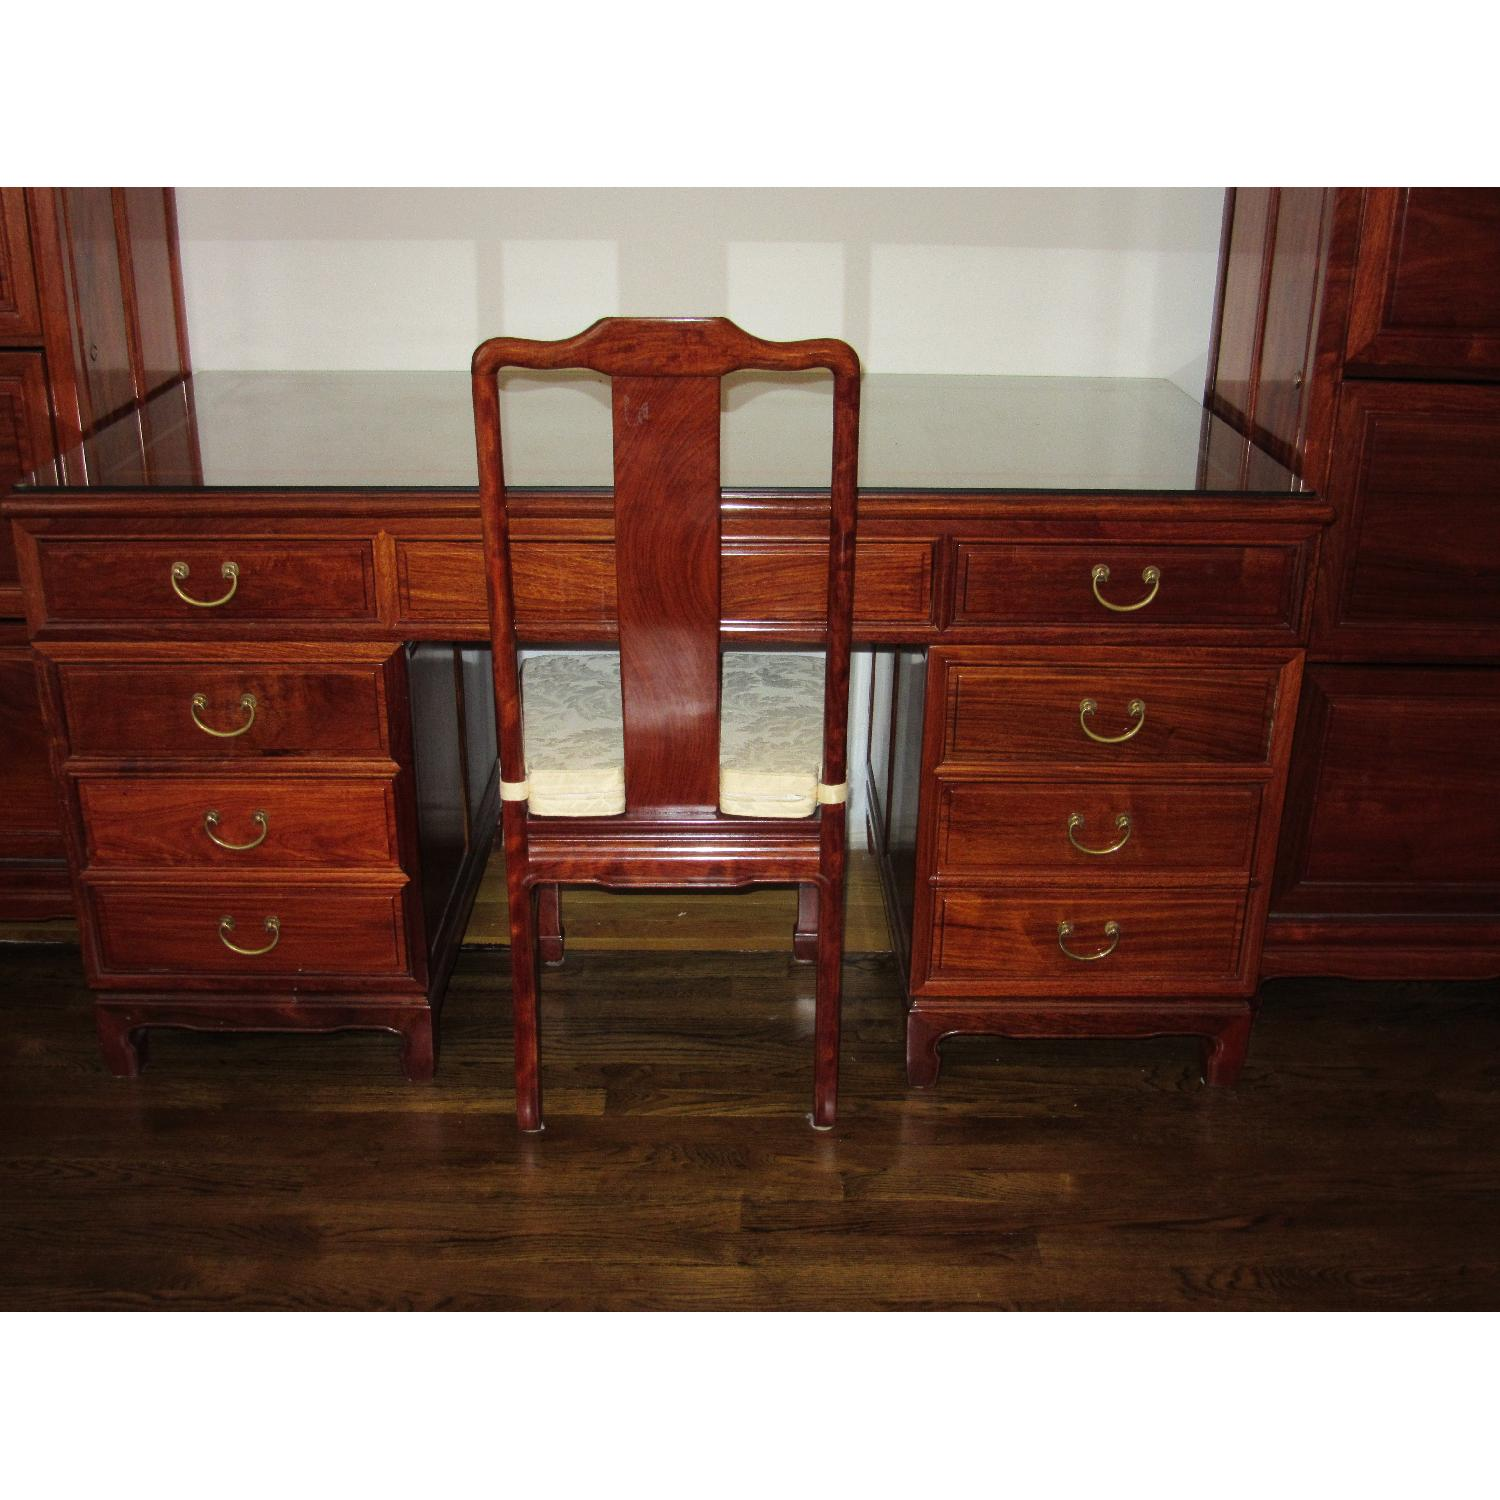 Hand Crafted Desk w/ Desk Chair - image-1